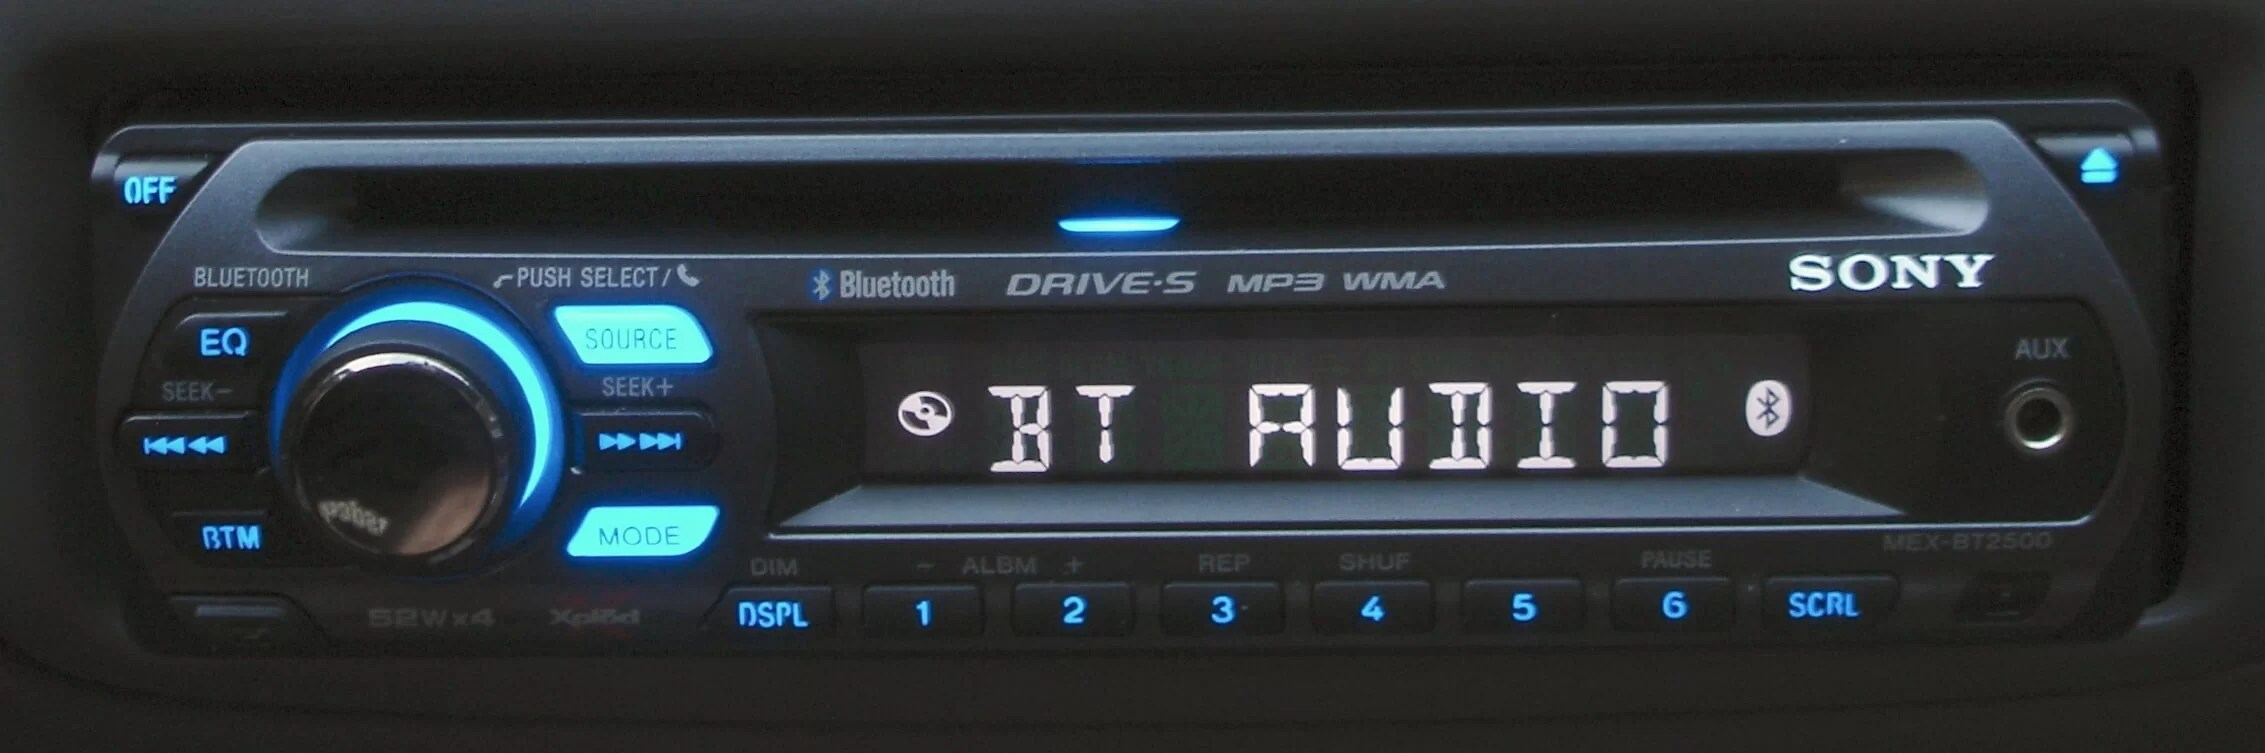 autoradio bluetooth feu vert autoradio bluetooth main libre autoradio bluetooth telephone autoradio bluetooth pioneer autoradio bluetooth gps autoradio bluetooth alpine autoradio bluetooth leclerc autoradio bluetooth sony